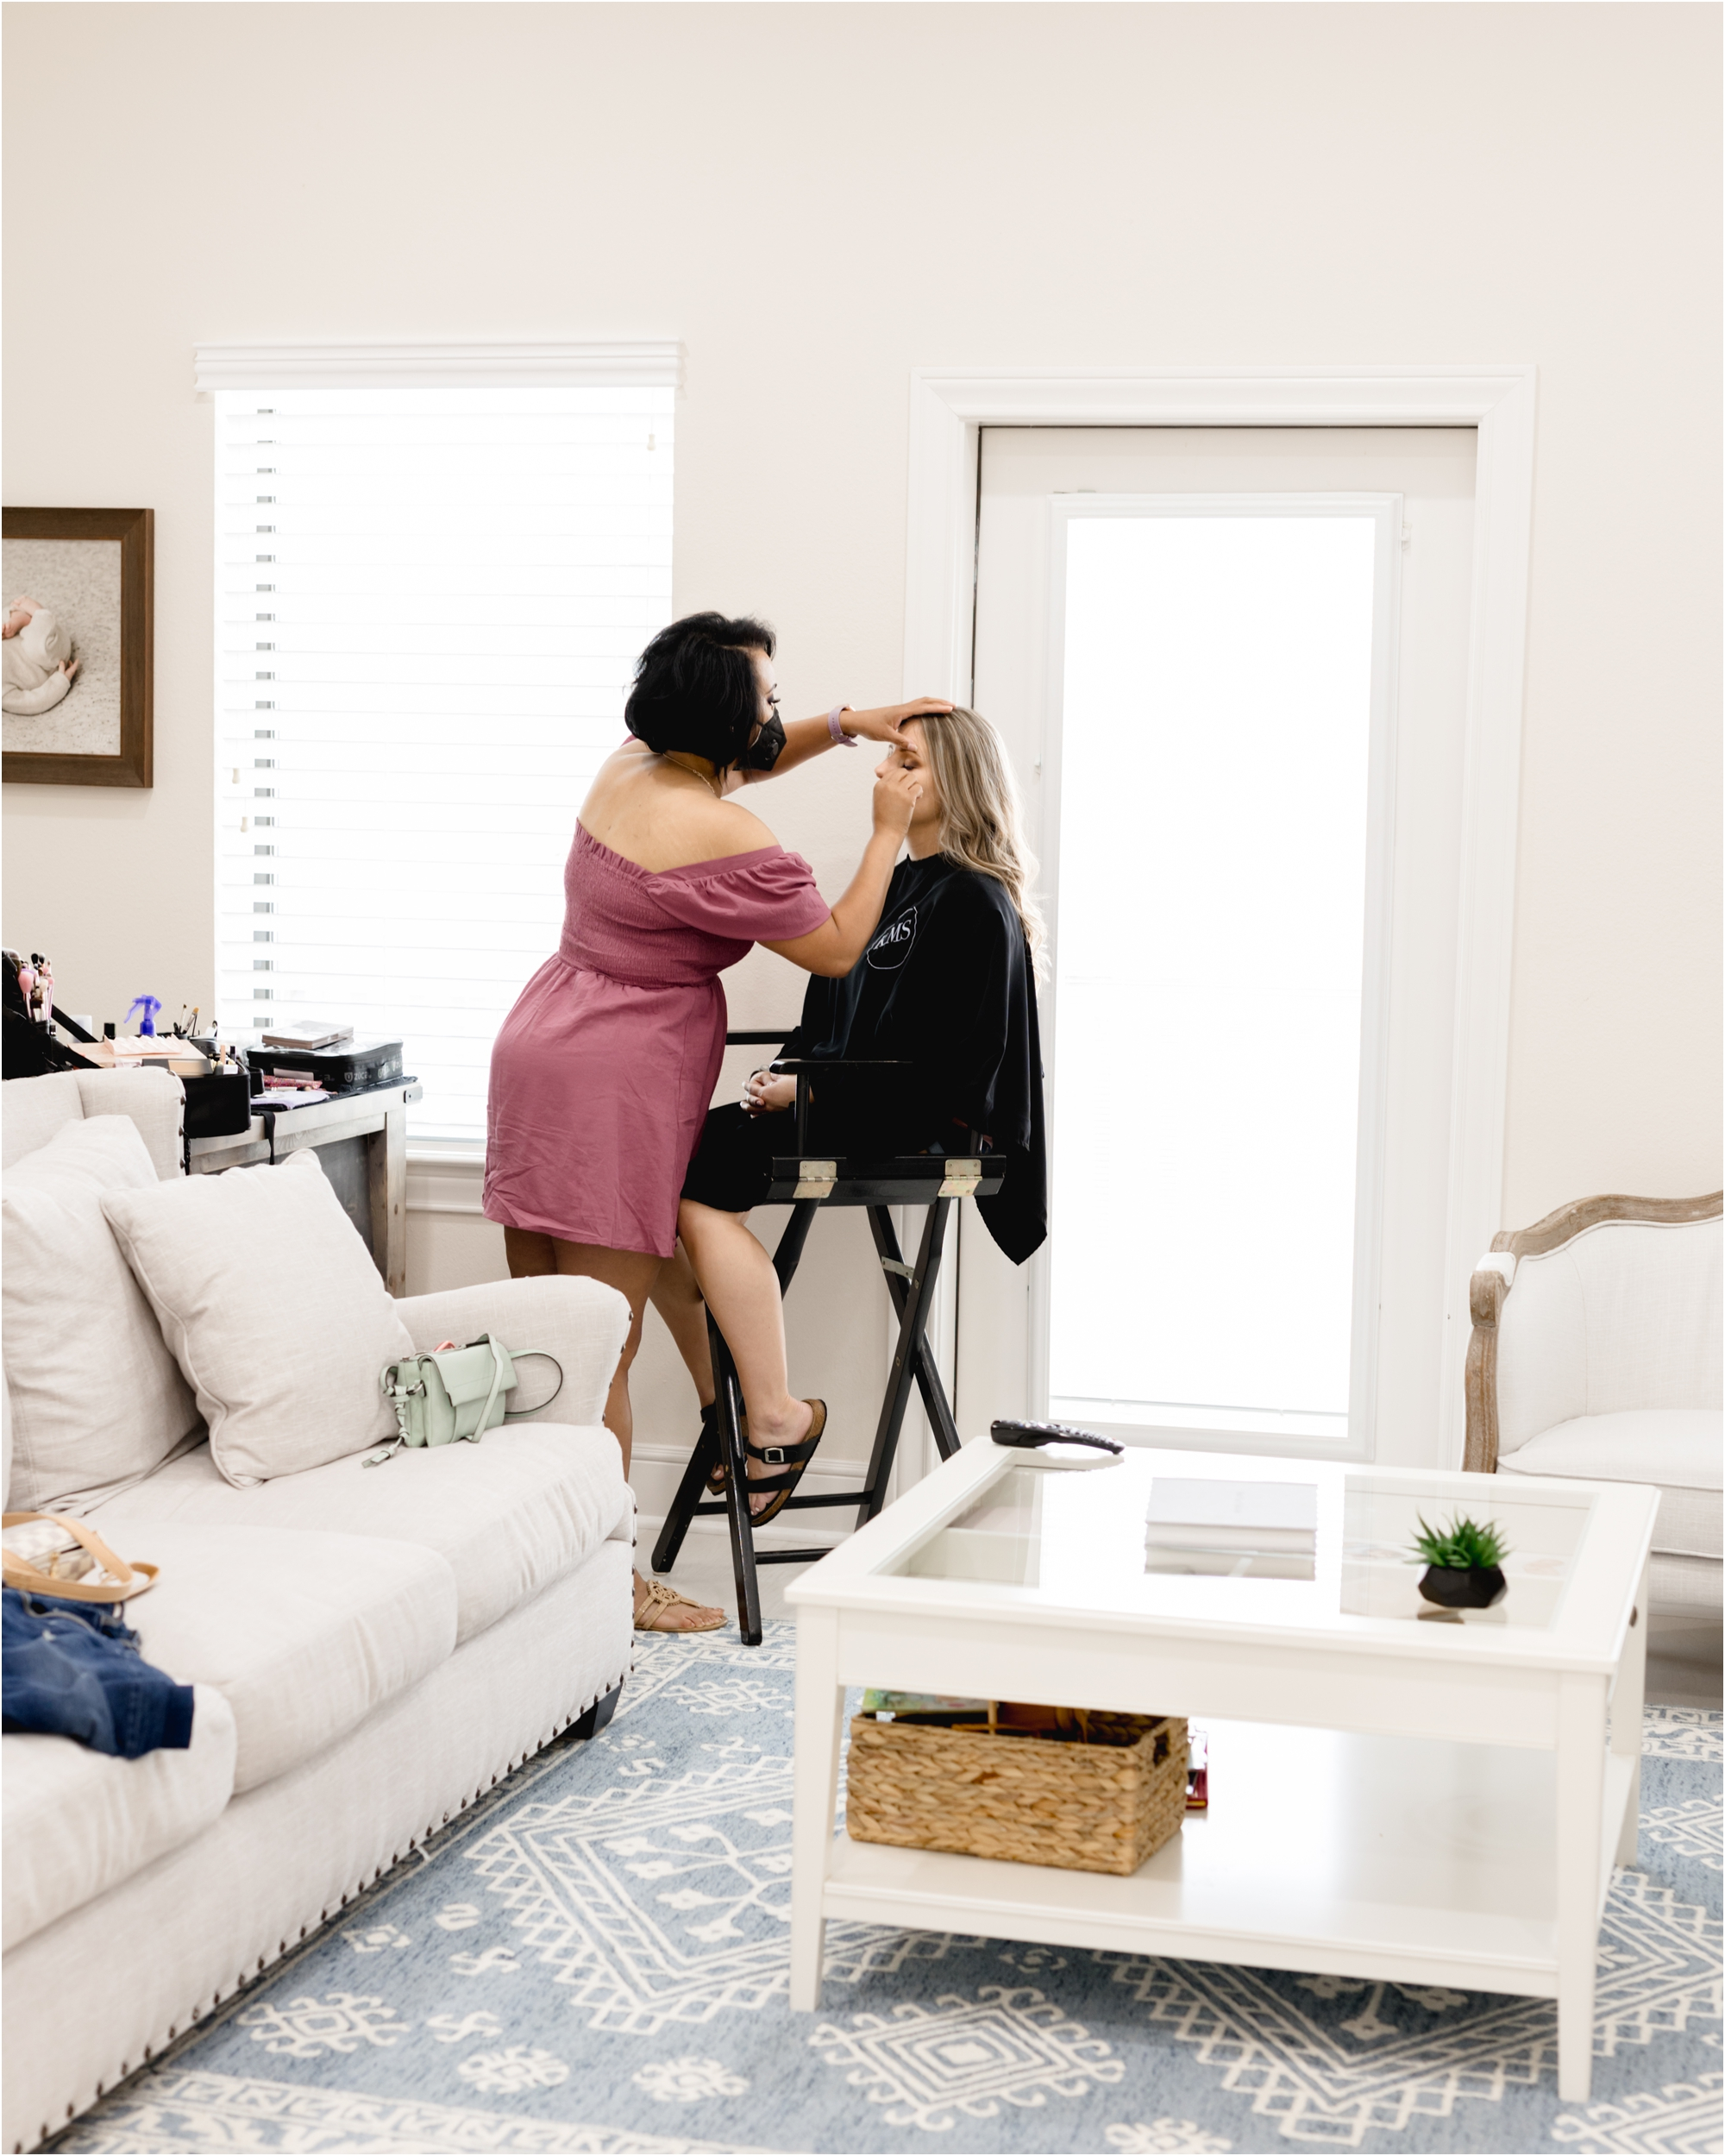 Hair and makeup application prior to surrogate maternity session in Houston with Kelly of Lifetime of Clicks Photography.